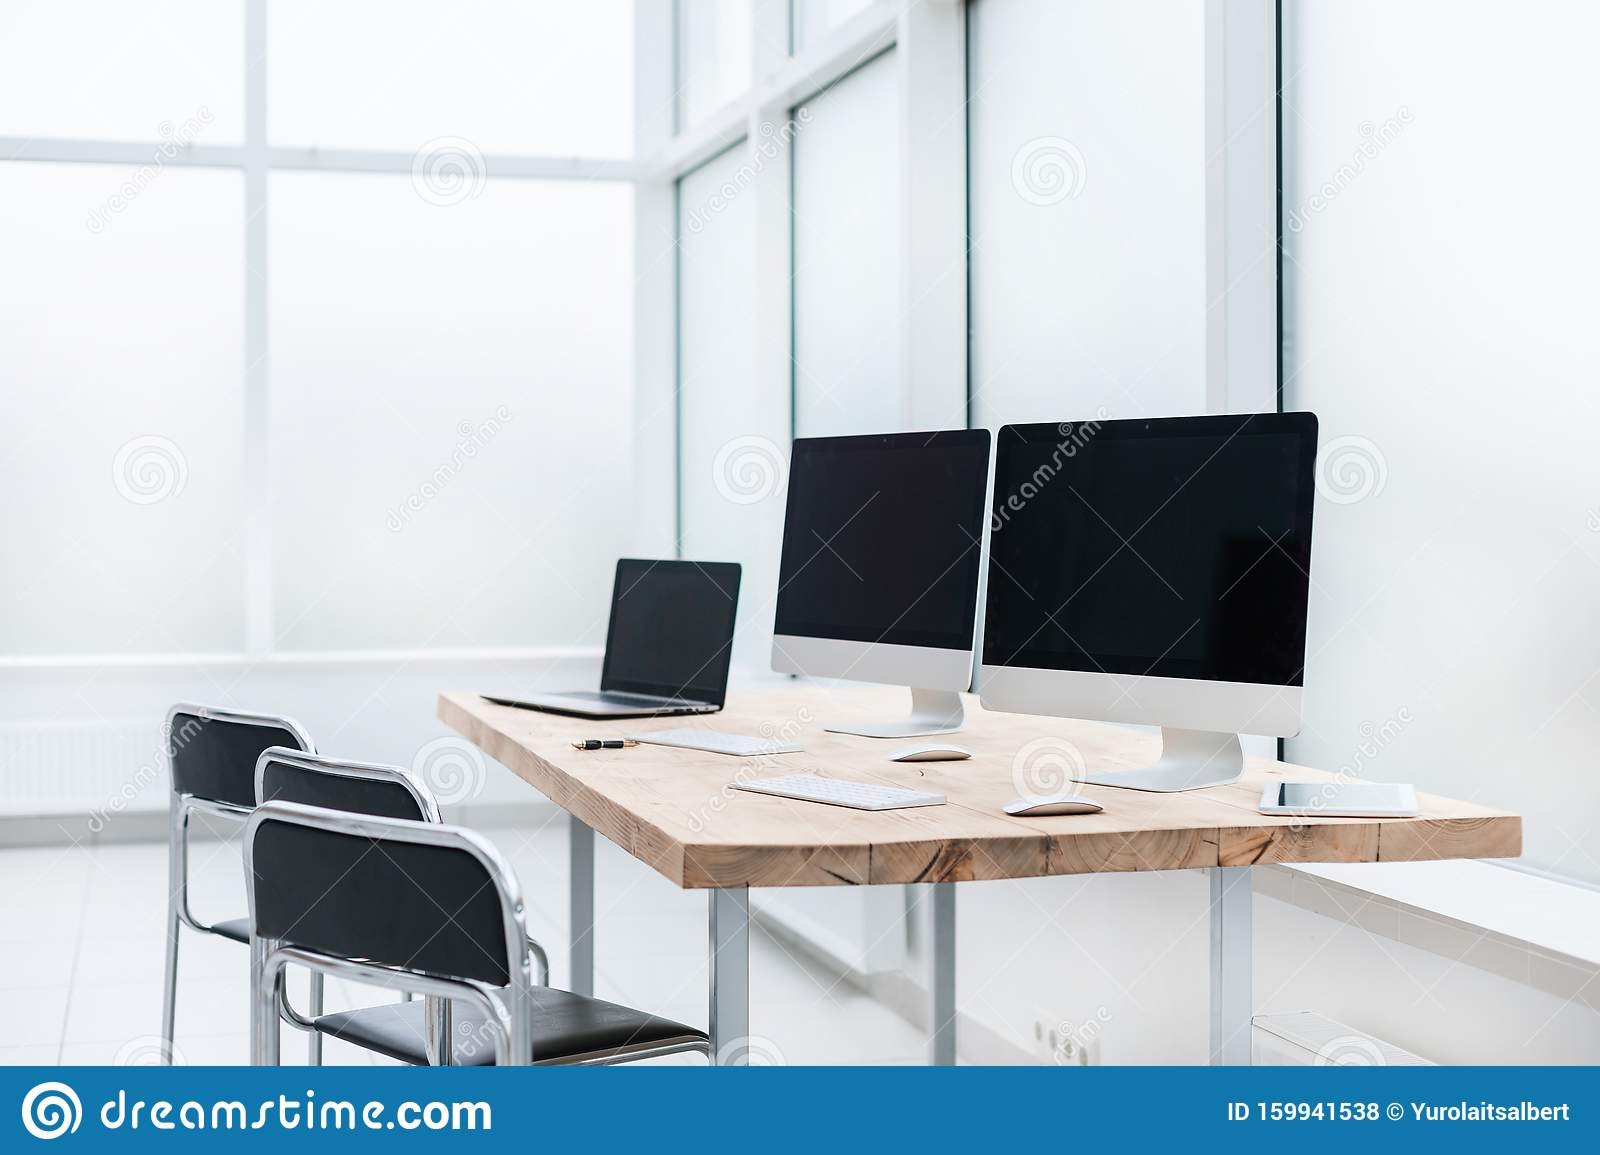 Workplace With Computers On The Table In An Empty Office Stock Photo Image Of Interior Laptop 159941538